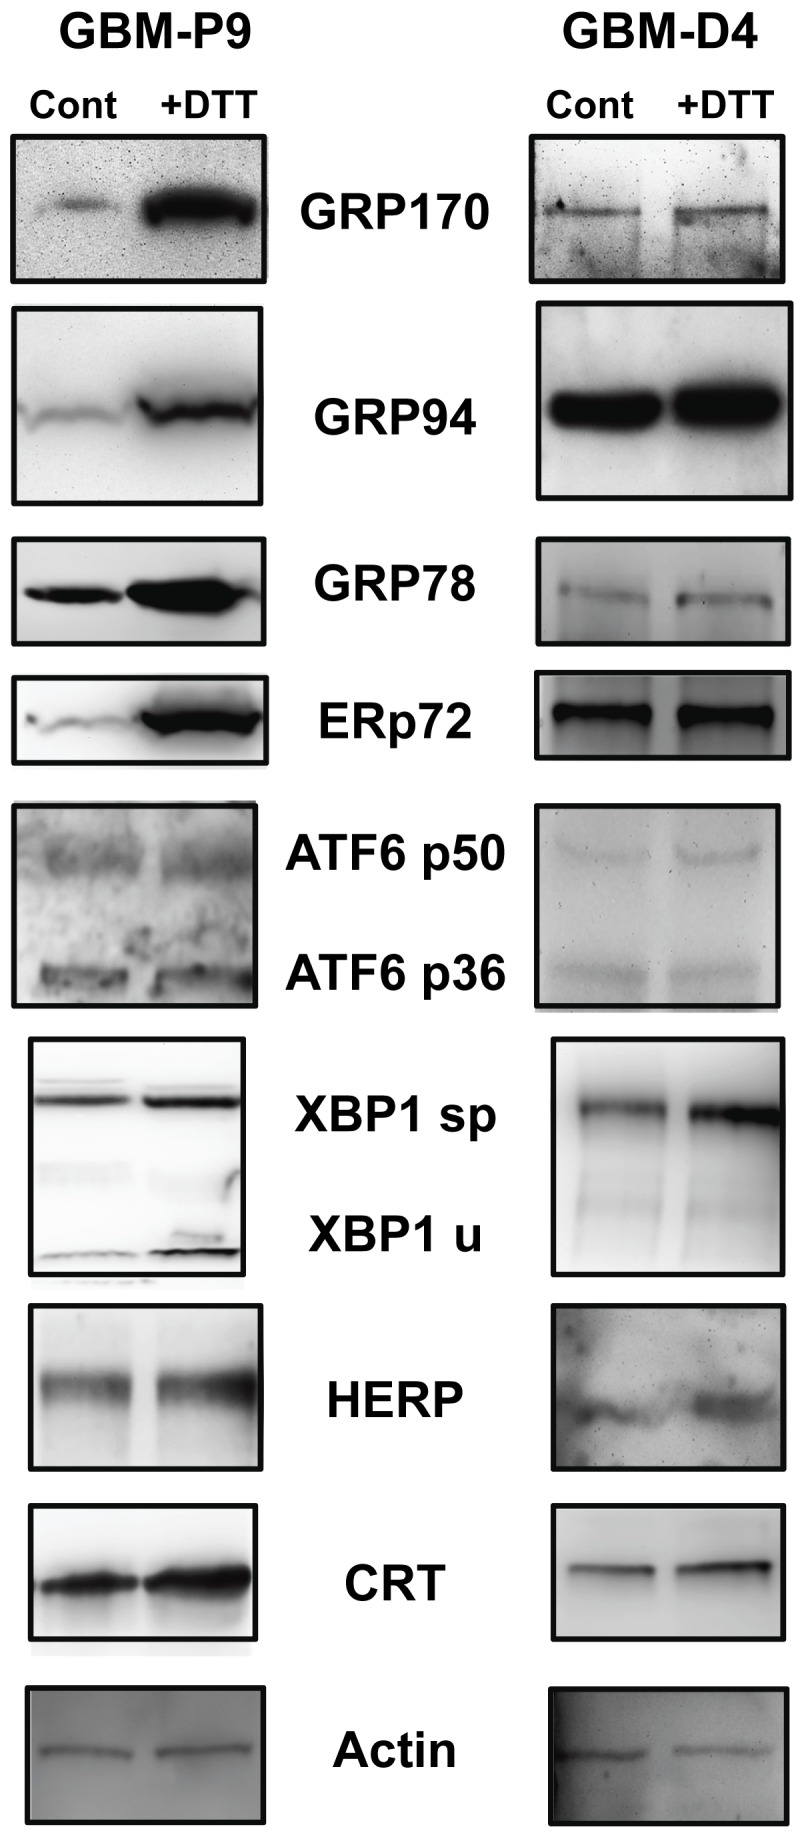 """Primary tissue culture cells from newly-resected gliomas also display inducible elements of the UPR. Dissociated cell cultured from freshly-resected GBMs were grown under serum-free conditions and were treated (or not, """"Cont"""") with 1 mM DTT (""""+DTT"""") for 4 hrs. Cell cultures were harvested, and cells lysed described. Proteins were separated on SDS-PAGE and Western blotted and probed with the antibodies listed. Upregulation of some of the UPR components is evident. Actin probe is used as a loading control, from the stripped CRT blot. Other actin blots to verify loading are shown in Supplemental Figure S3 ."""